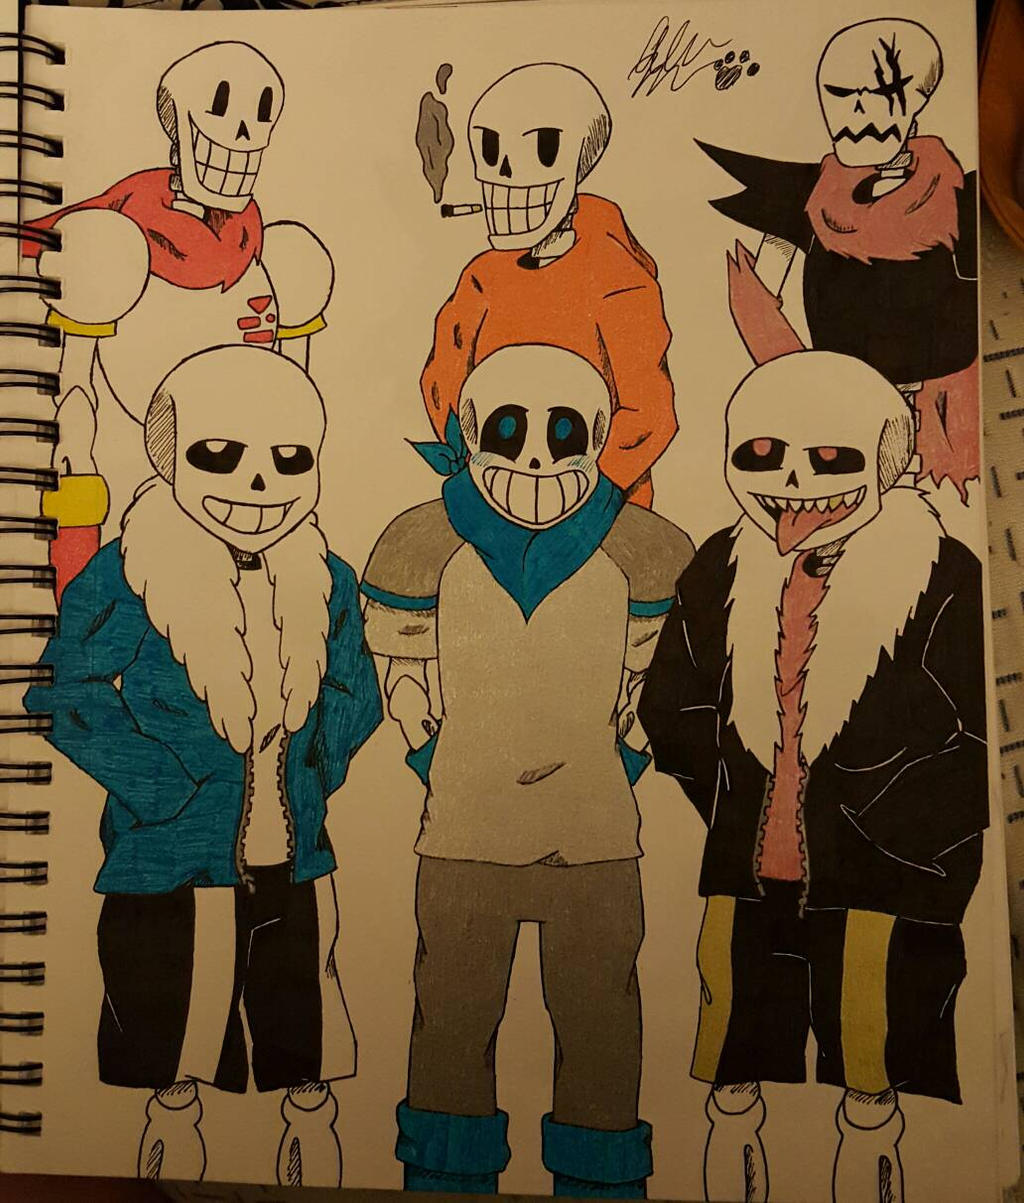 UT, US, And UF Sans's And Papyrus's By Alicesbeatinghearts